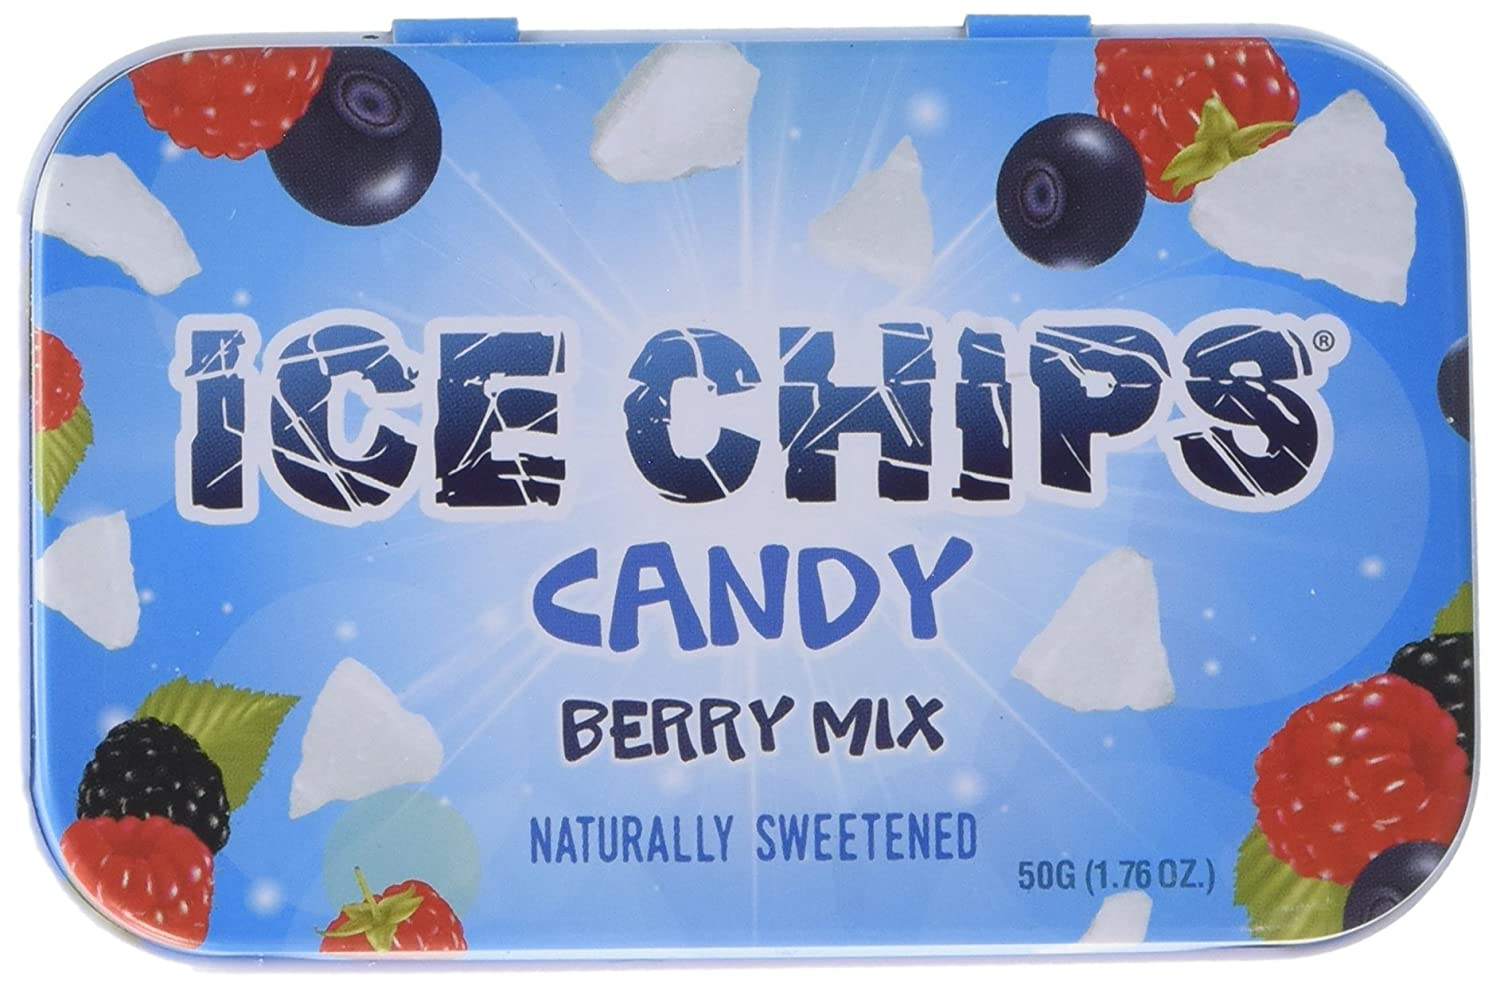 ICE CHIPS Candy Hand Crafted Tin Juicy Berry Mix Candy, 1.76 Ounce